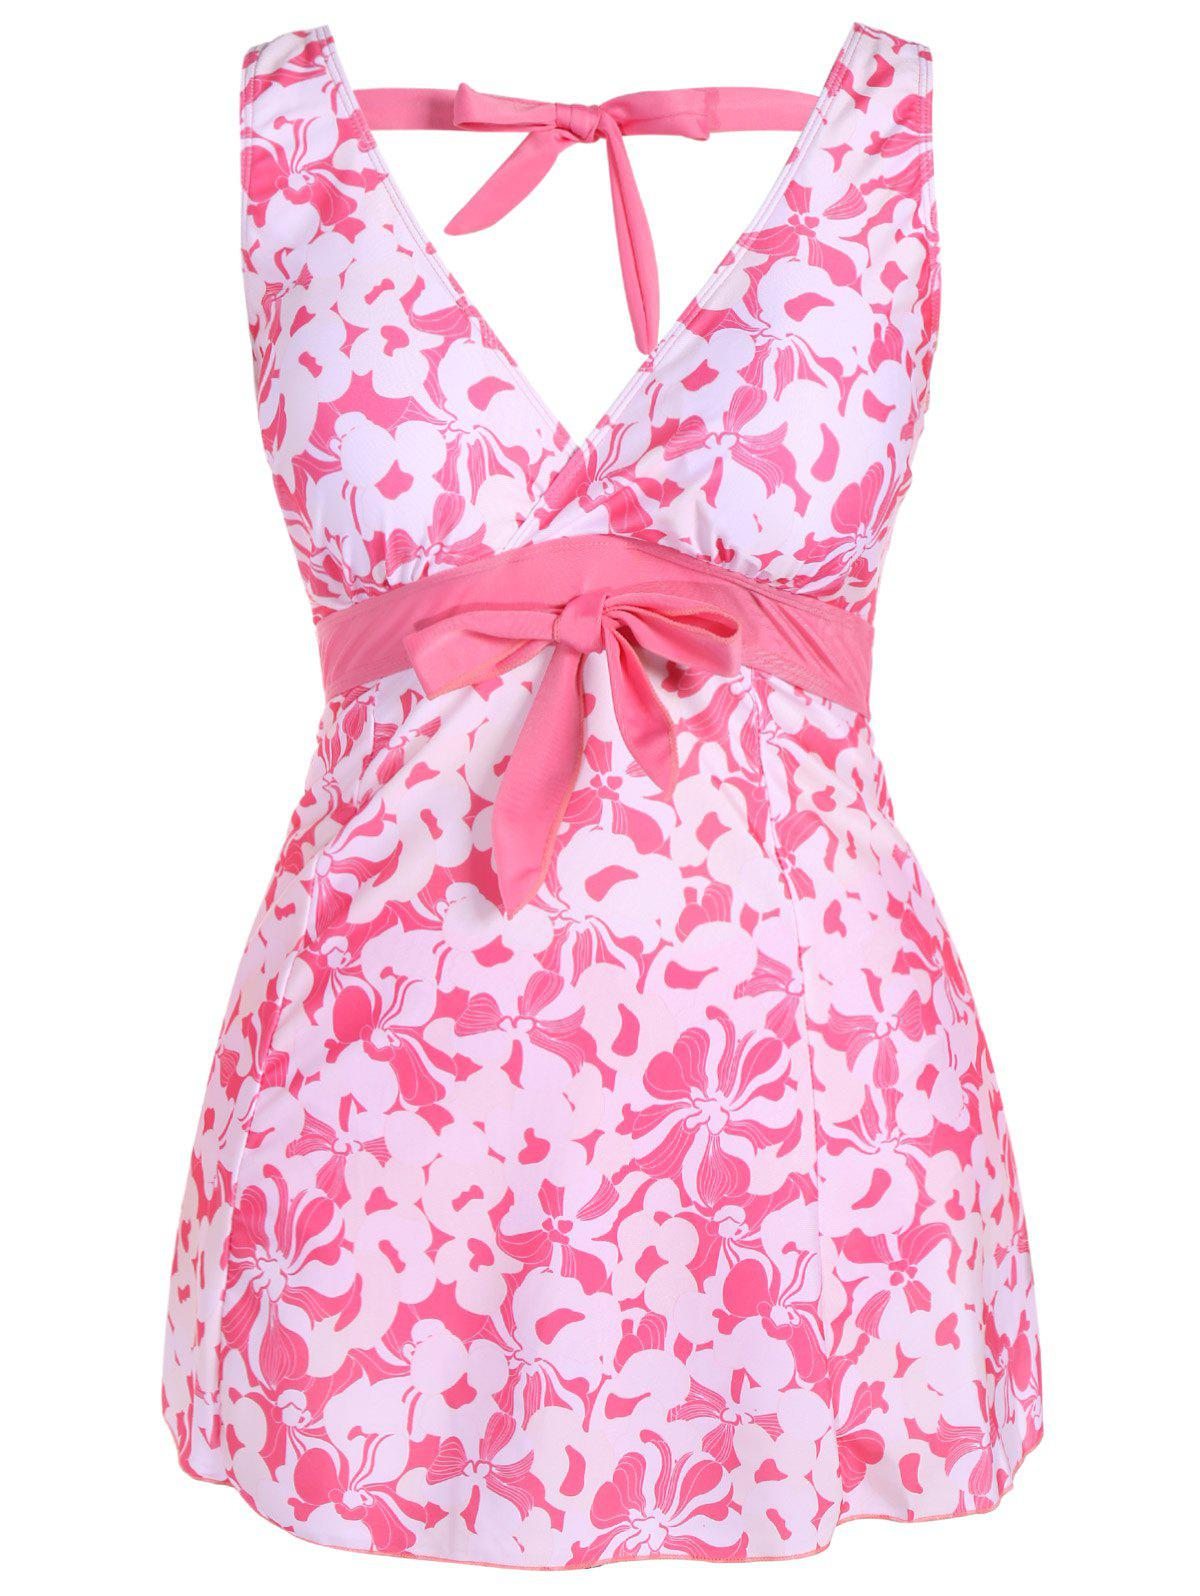 Fashionable Plunging Neck Bowknot Plus Size Women's Swimsuit - PINK 3XL